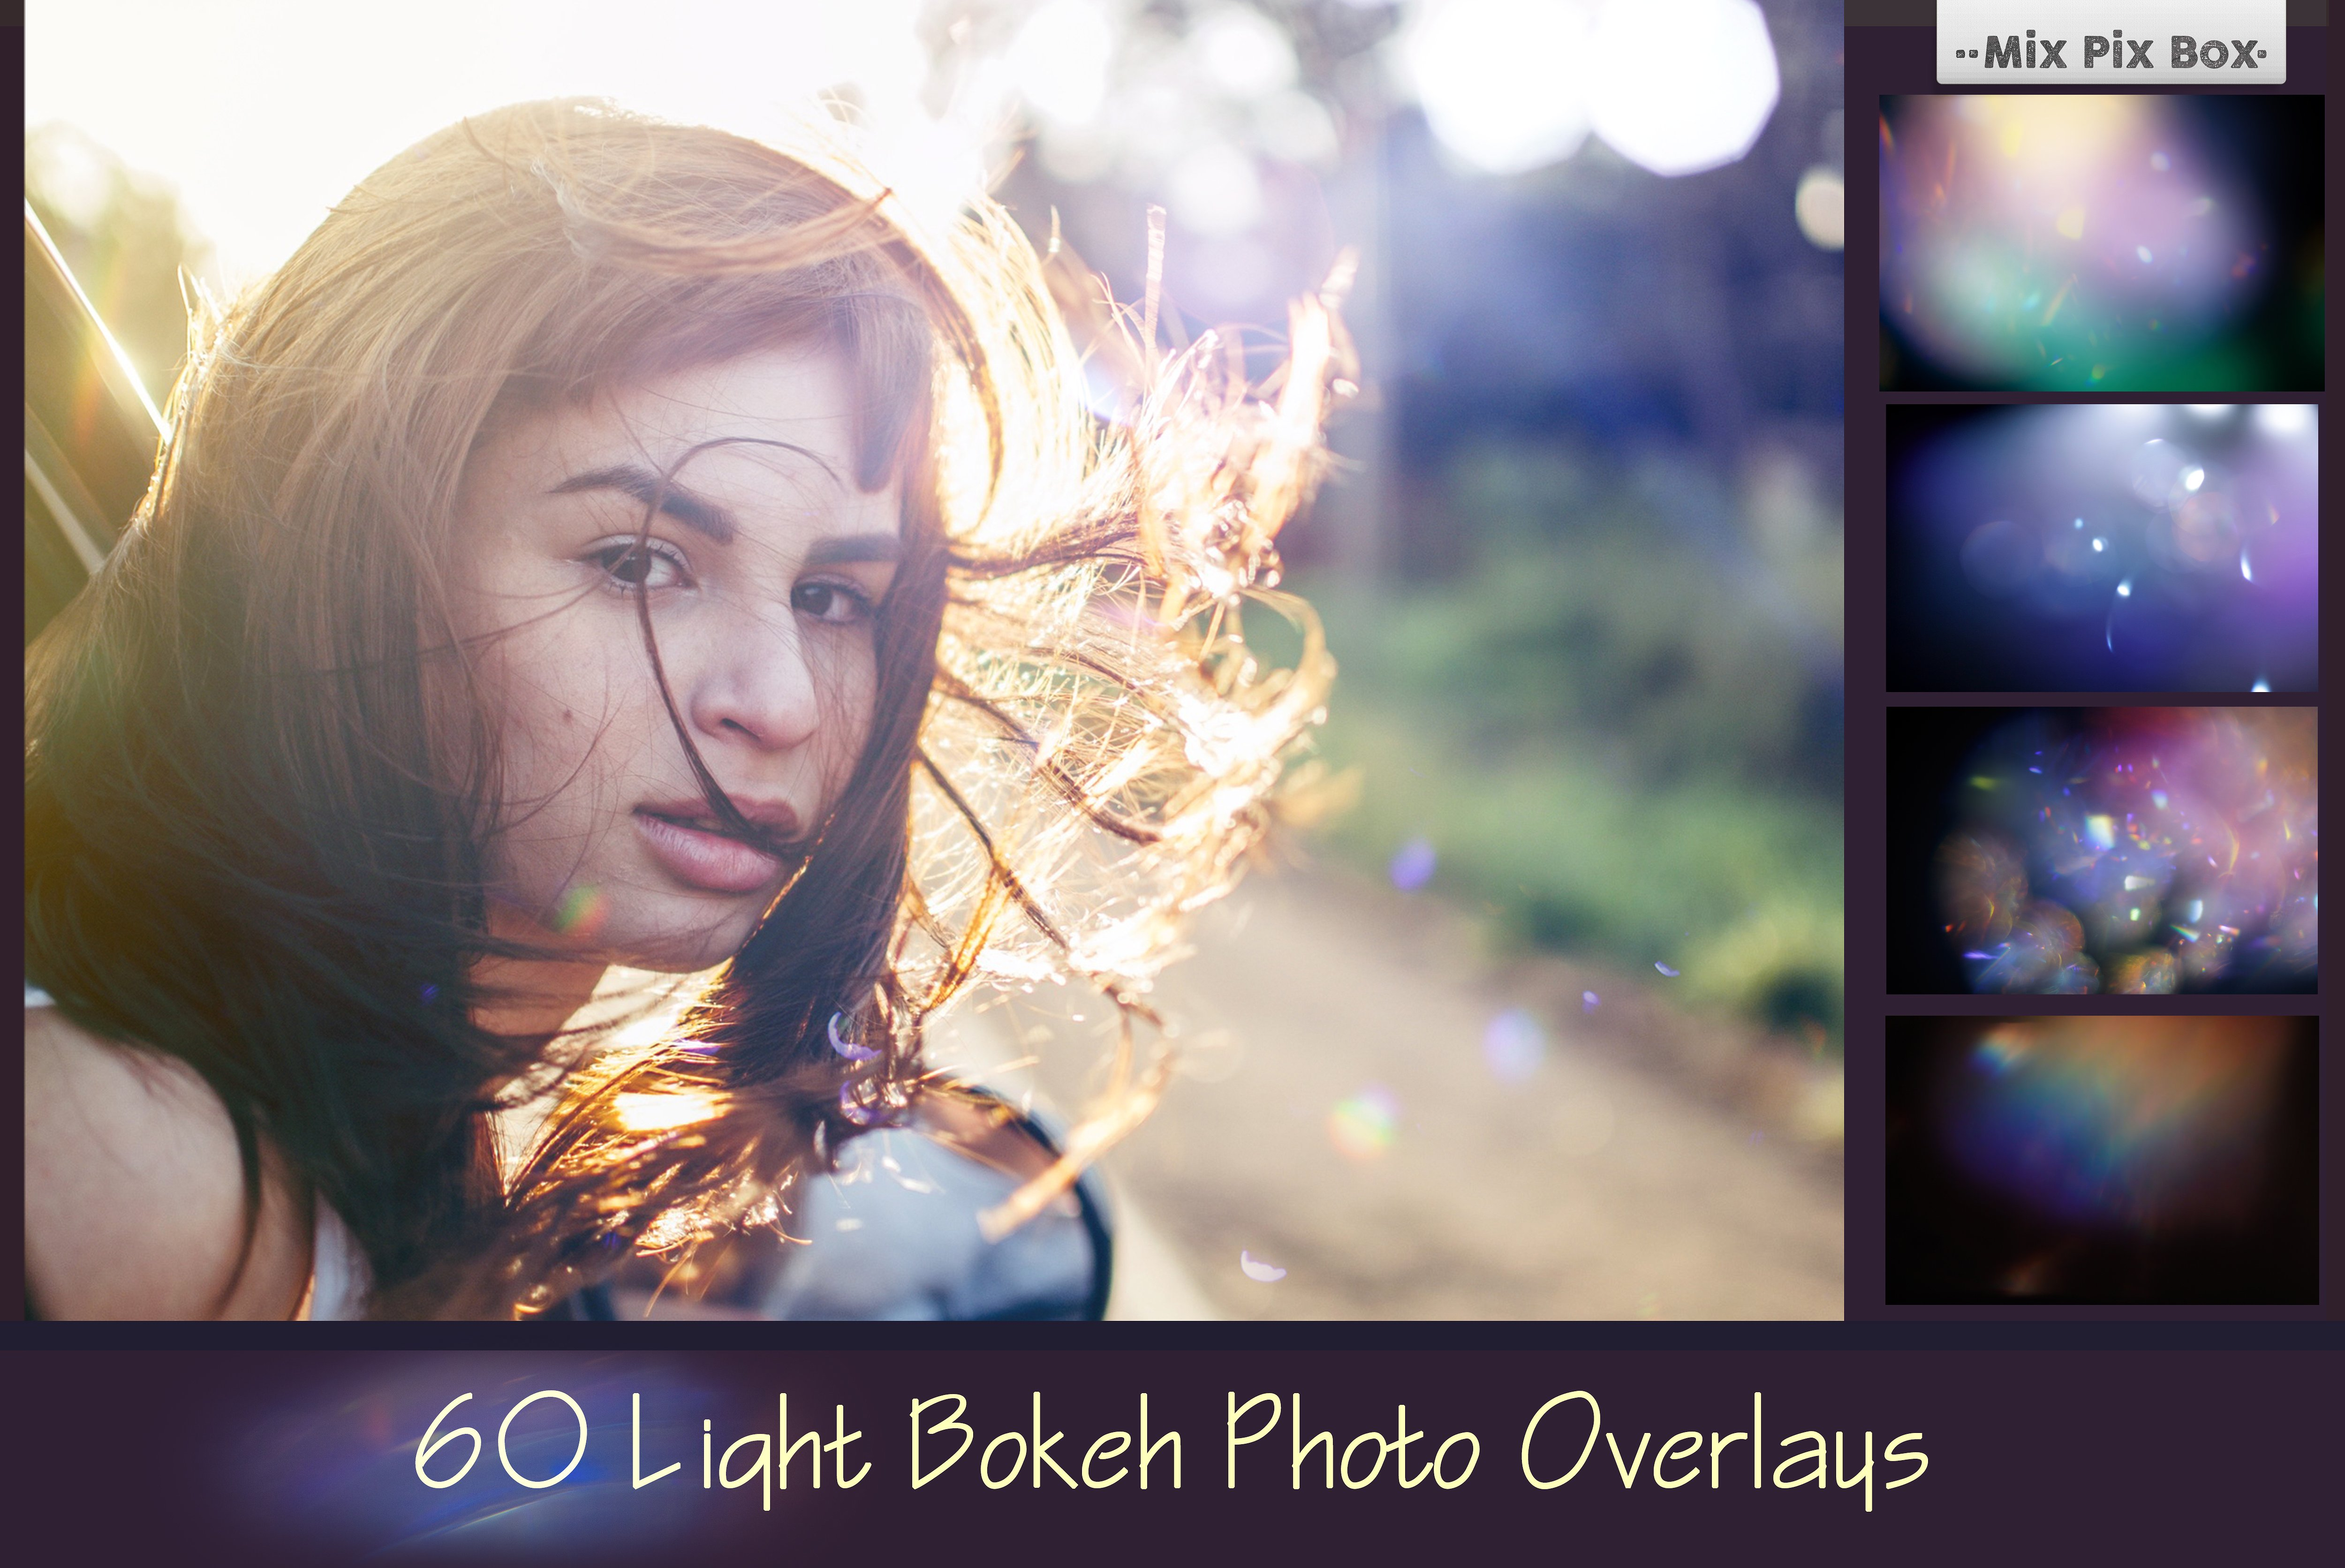 60 Sunlight Bokehs Overlays